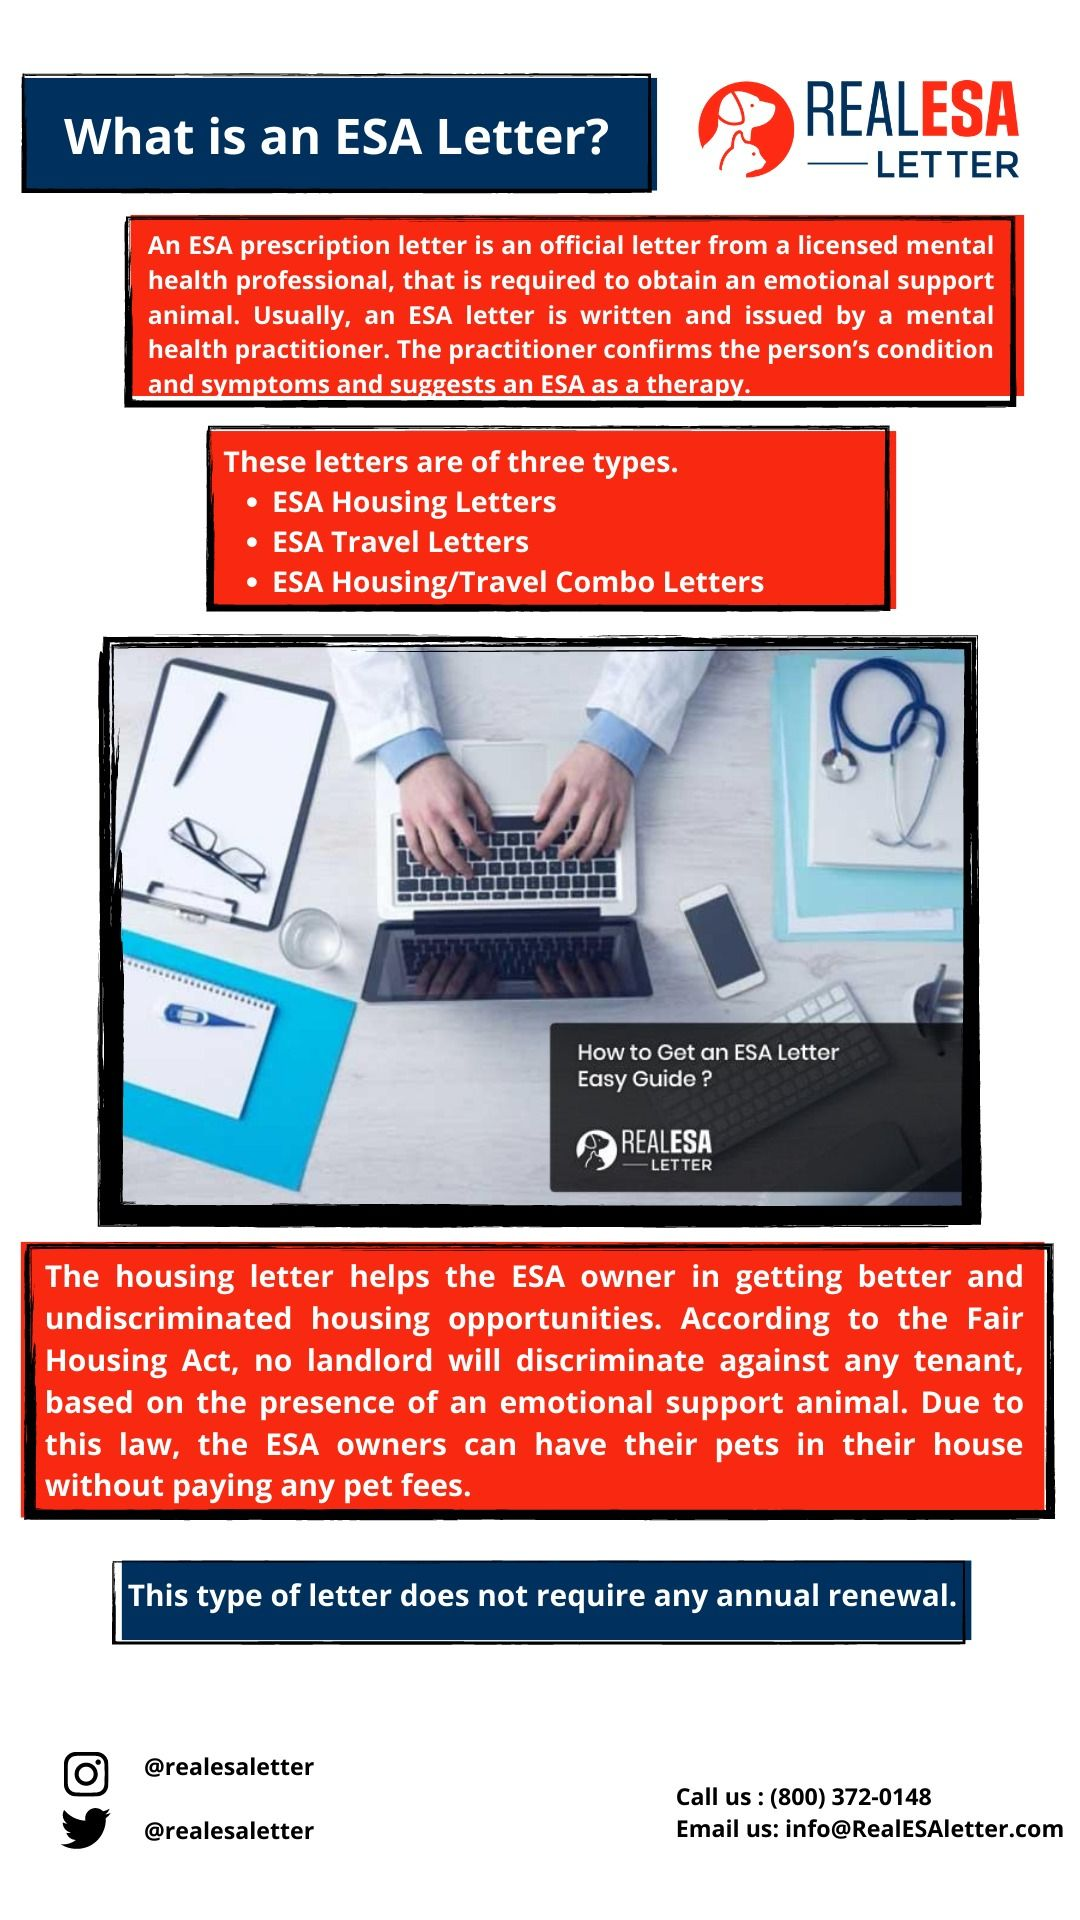 How To Get An Esa Letter Easy Guide Emotional Support Emotional Support Animal Esa Letter